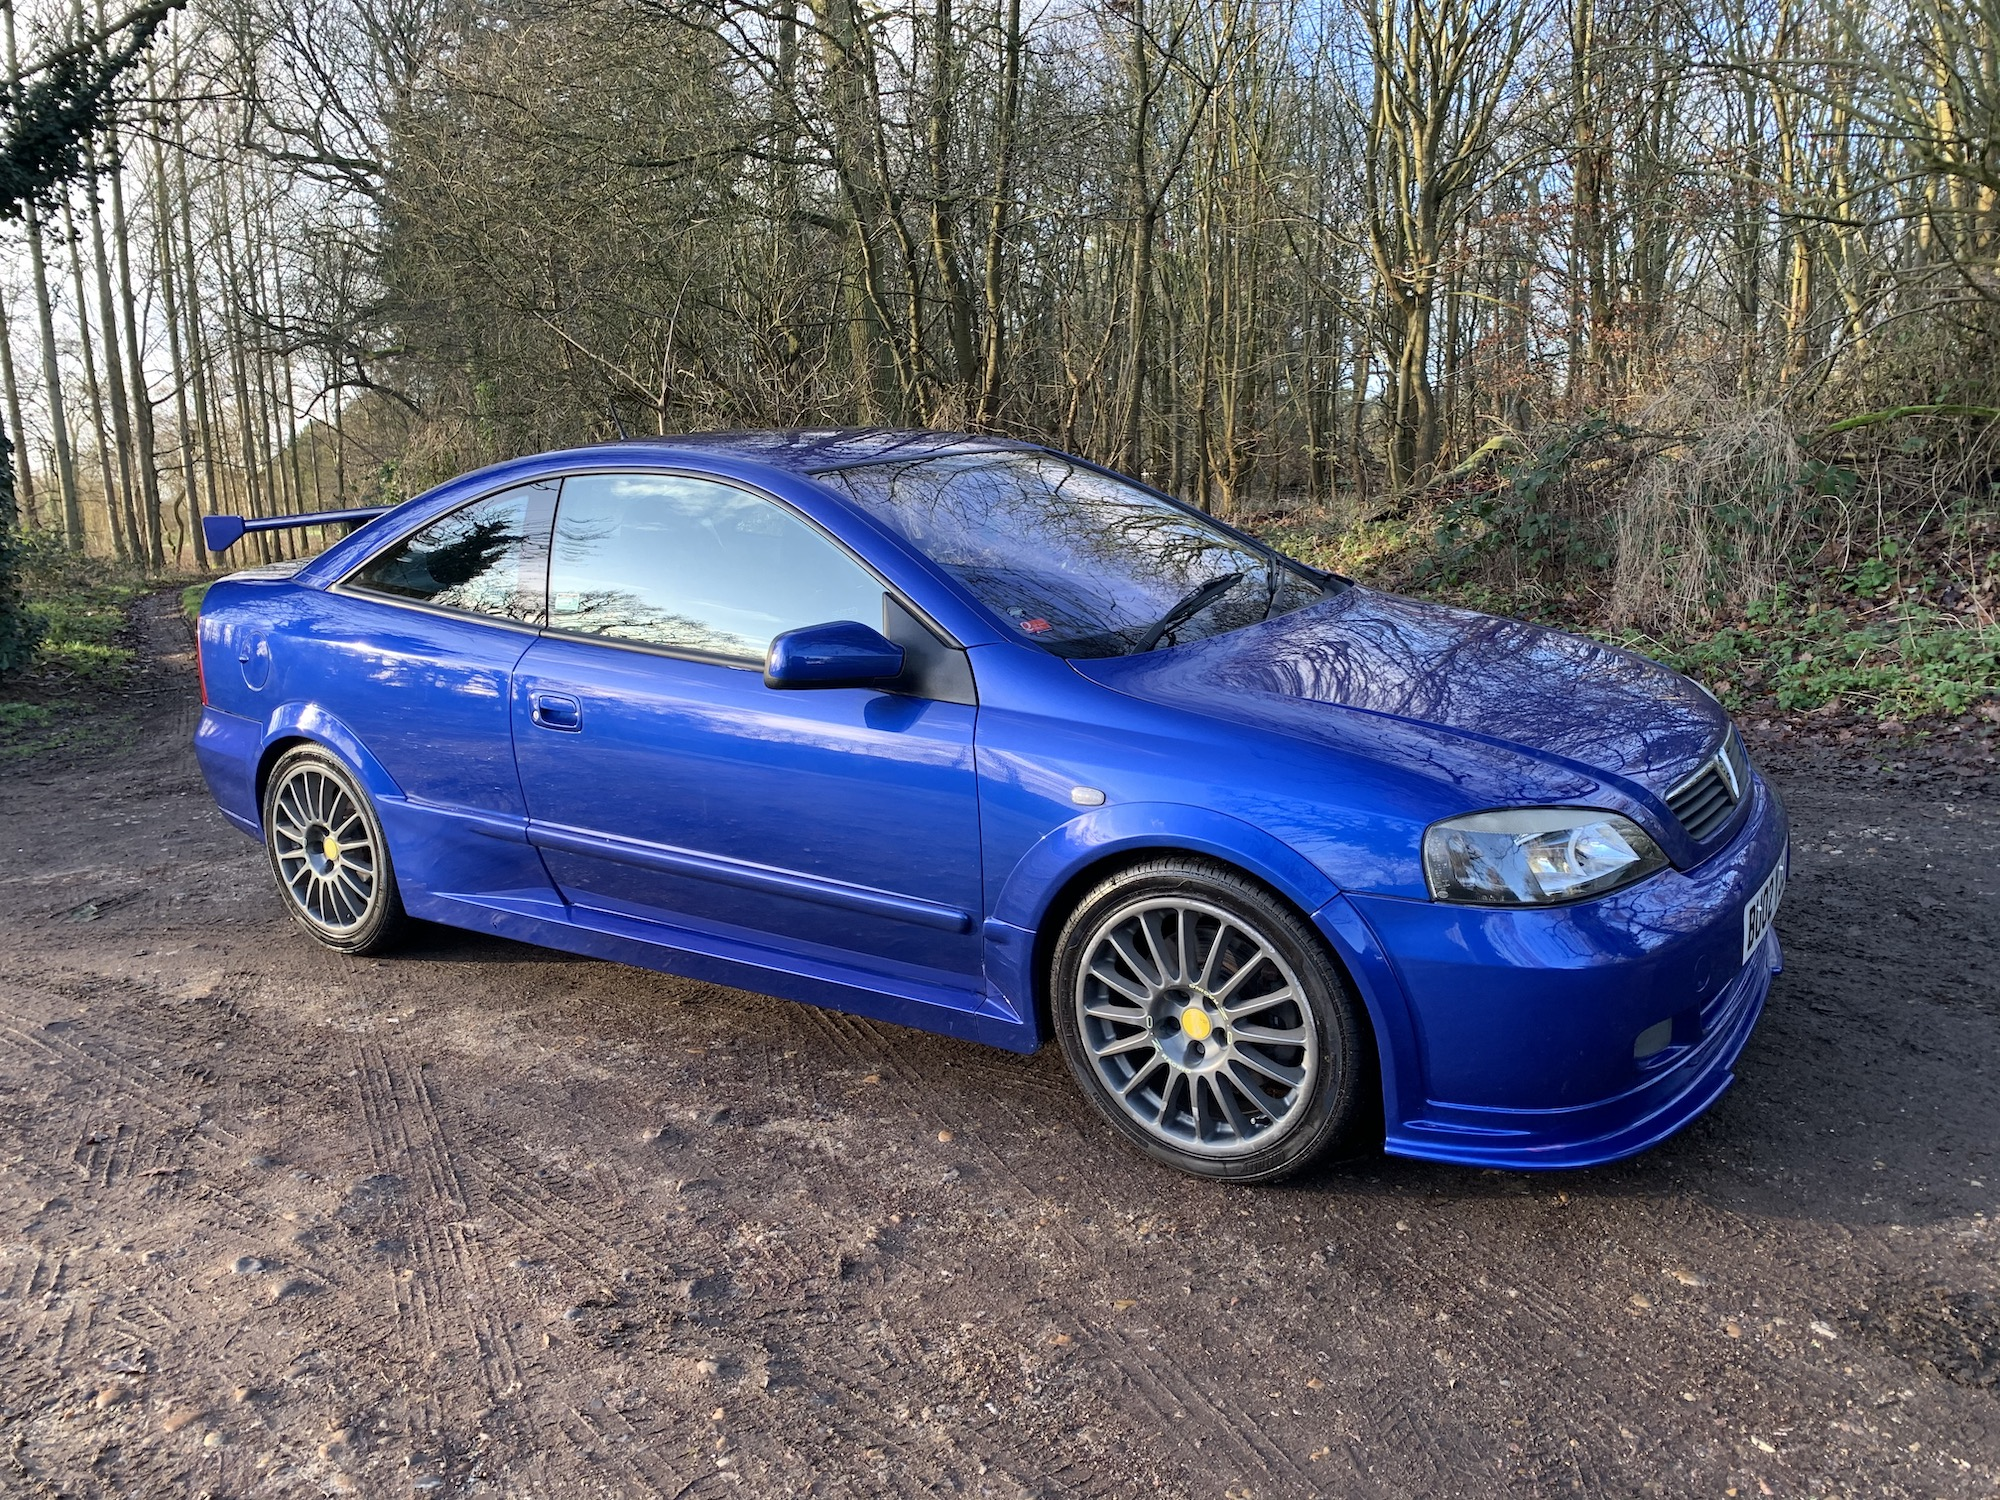 2002 VAUXHALL ASTRA COUPE 888